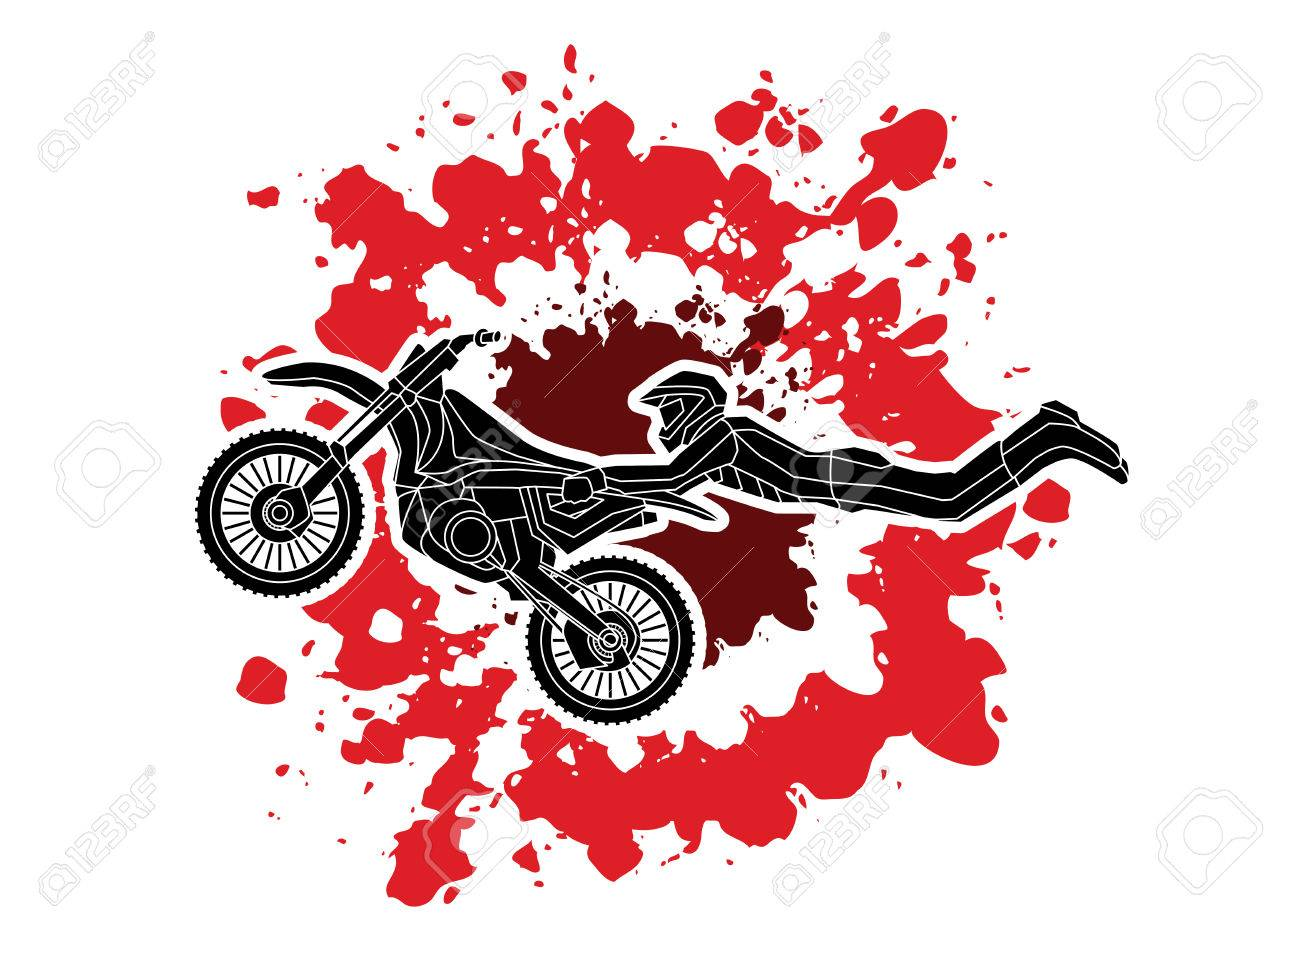 Freestyle Motocross Flying Trick Designed On Splatter Blood Background Royalty Free Cliparts Vectors And Stock Illustration Image 70258253